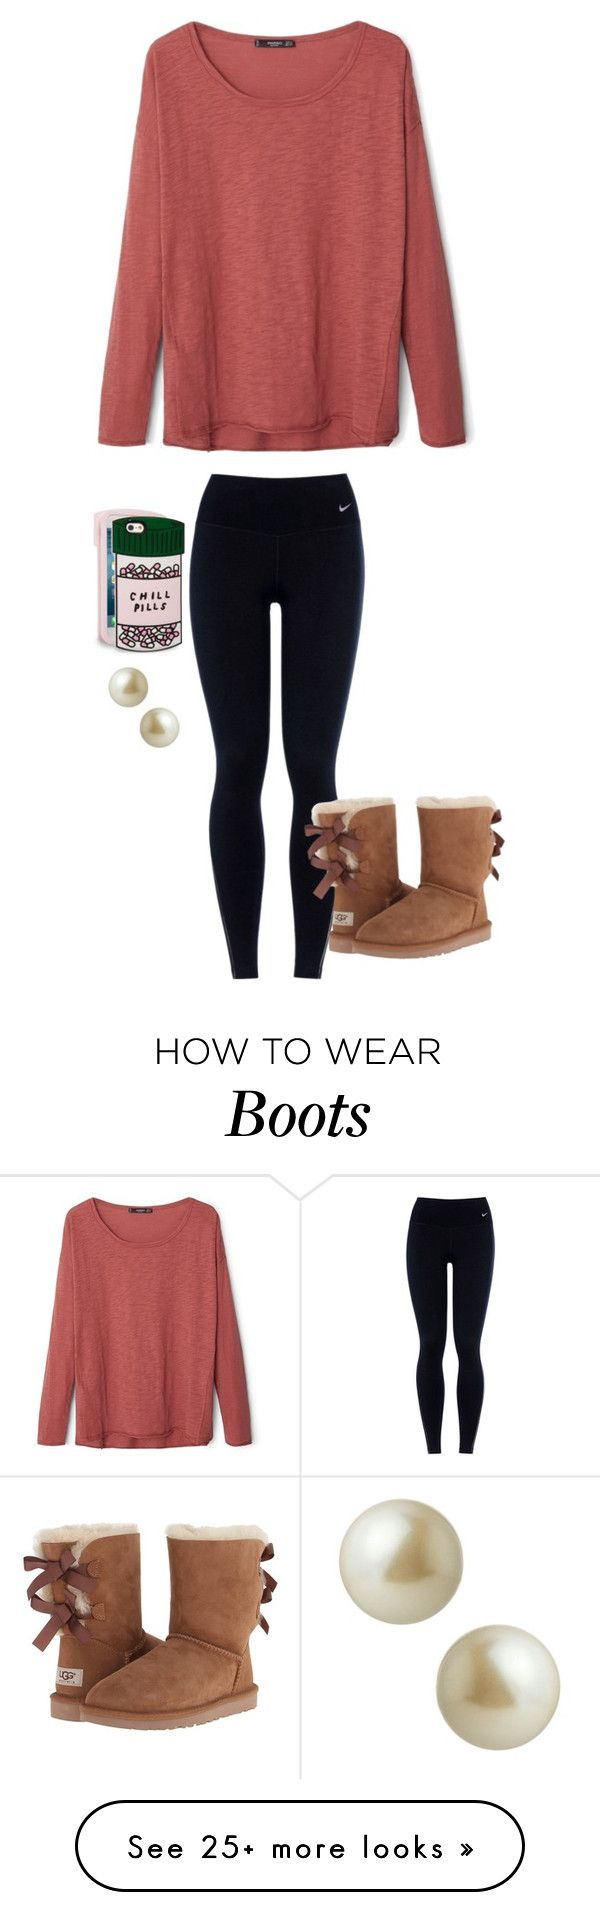 """Does anyone have these boots?"" by avaodom on Polyvore featuring moda, MANGO, NIKE, UGG Australia, ban.do, Carolee, women's clothing, women, female y woman"